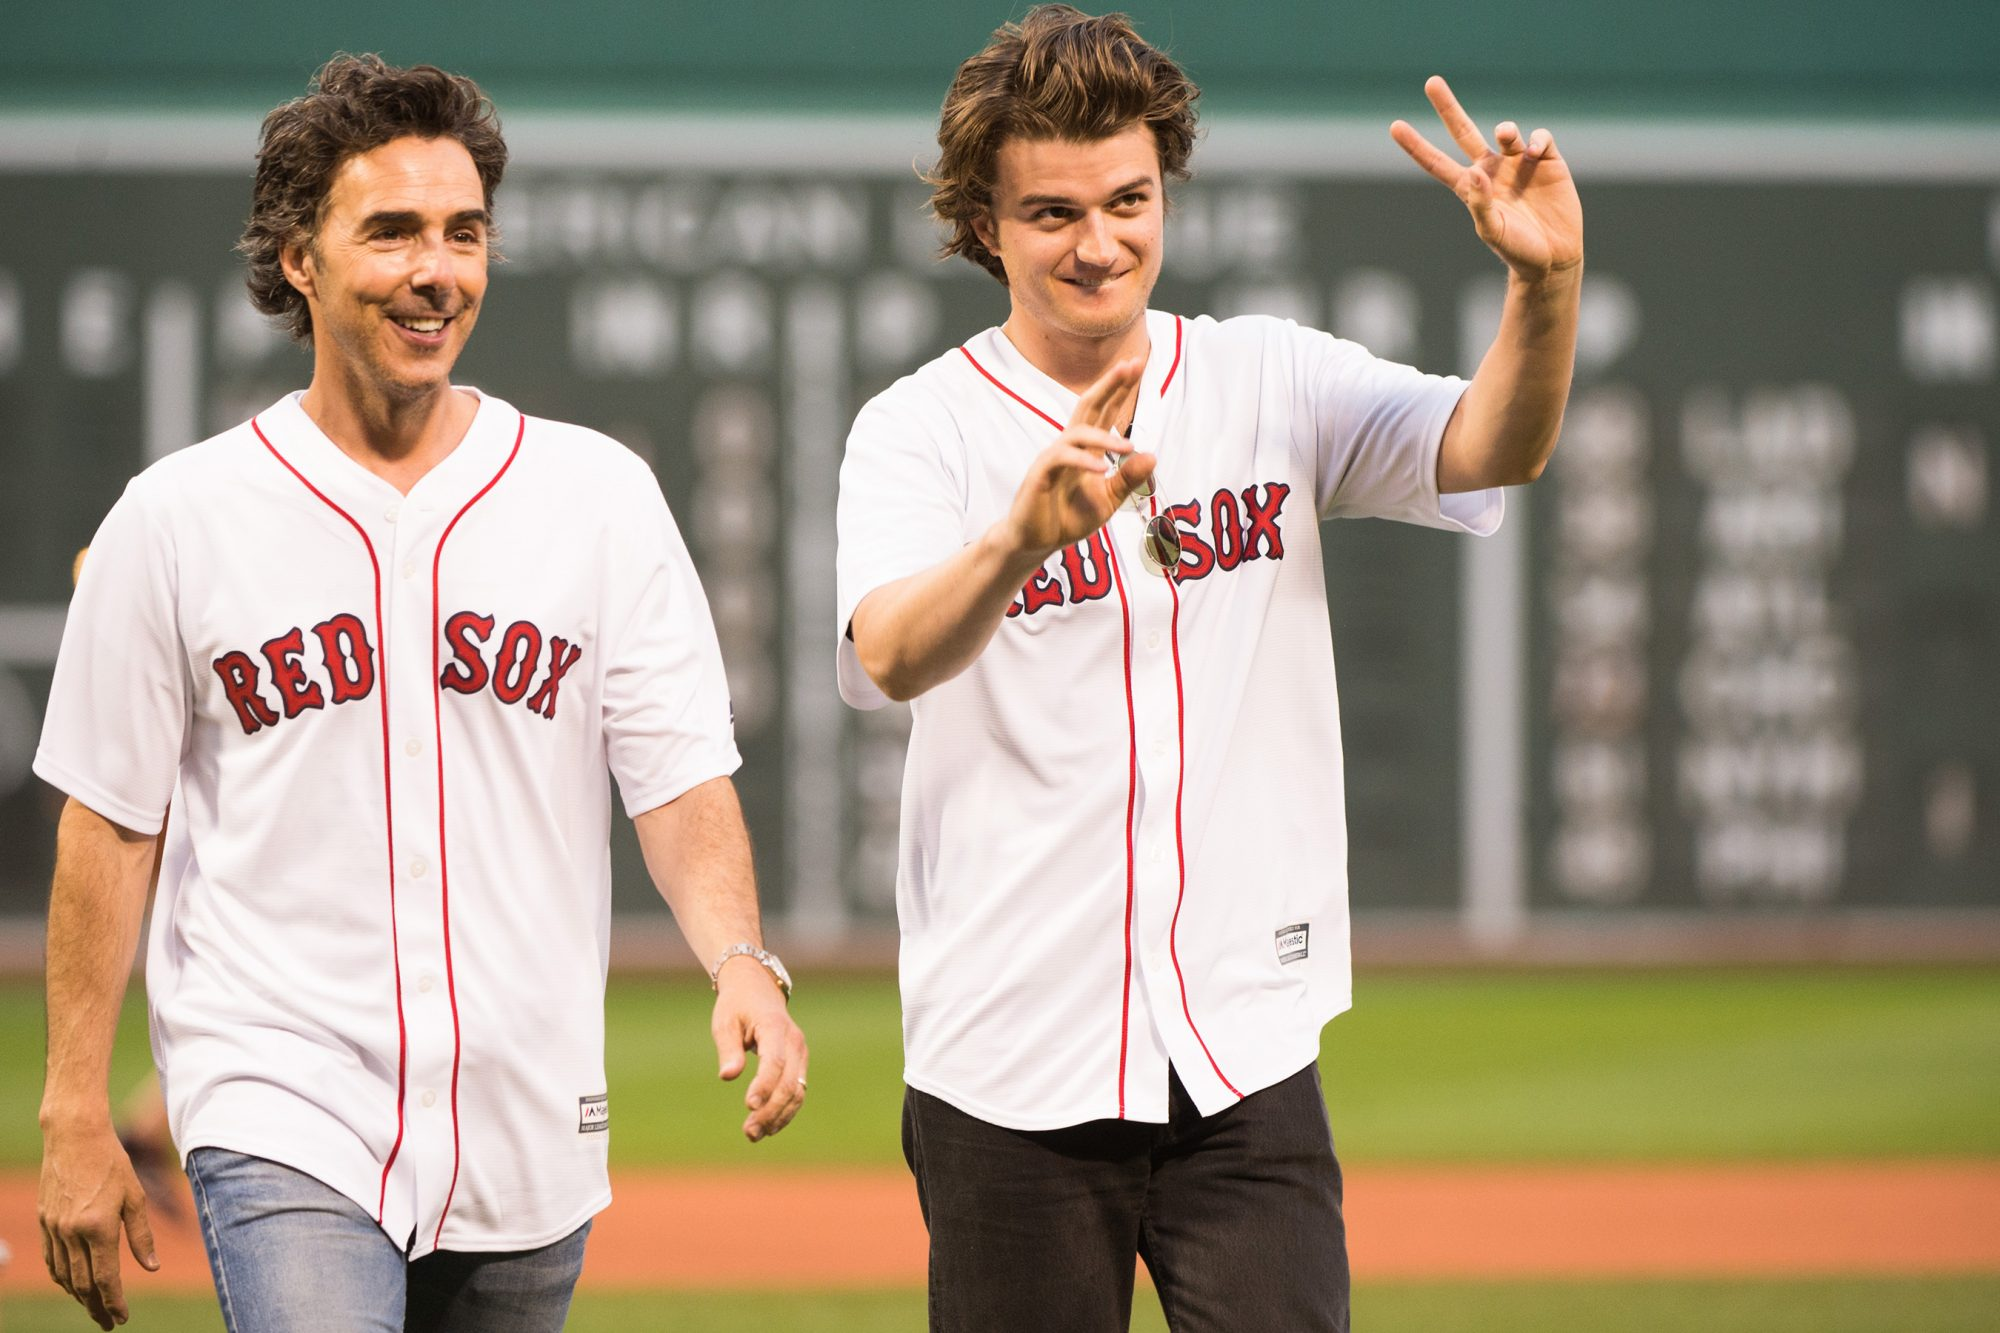 Shawn Levy and actor Joe Keery